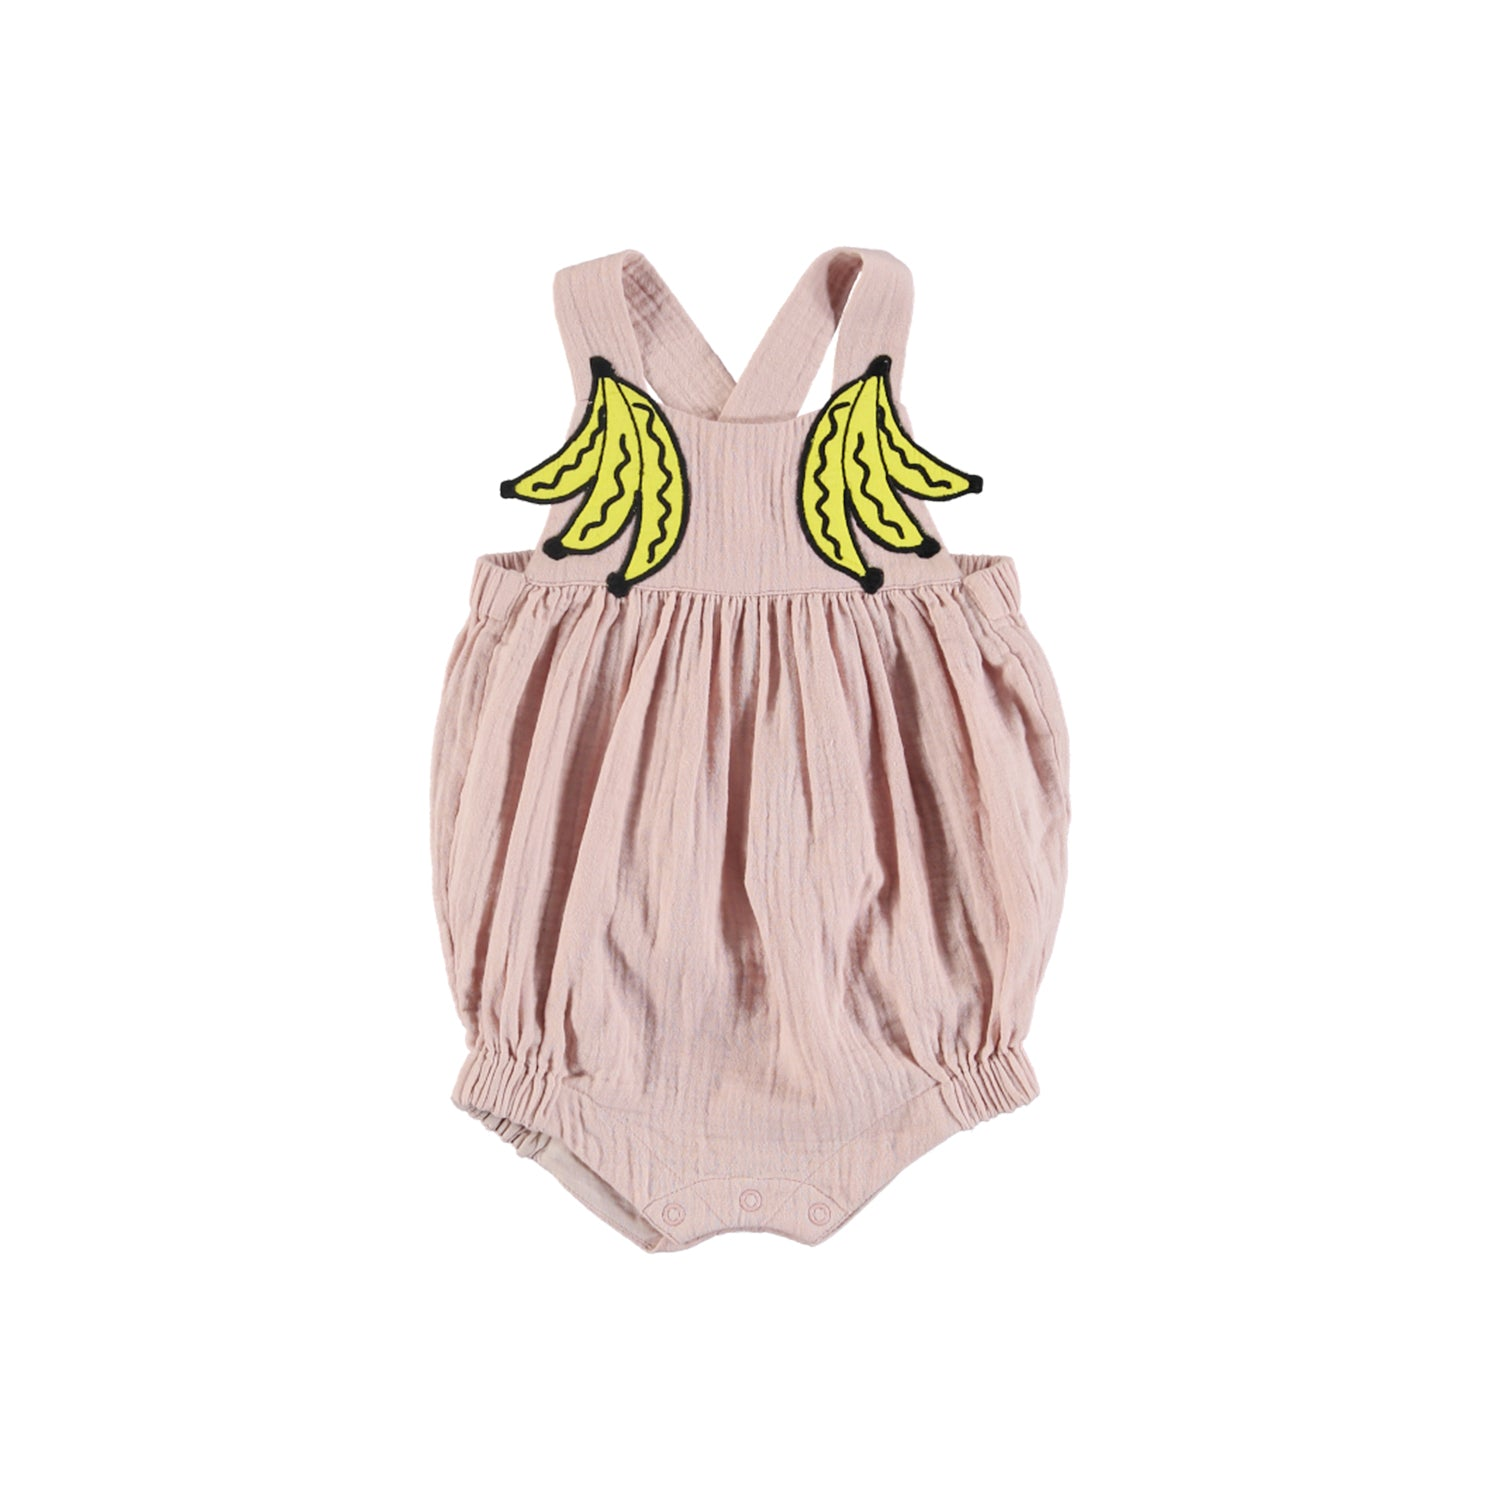 ad5934675e95f Stella McCartney Kids Banana Patch All In One – Crown Forever